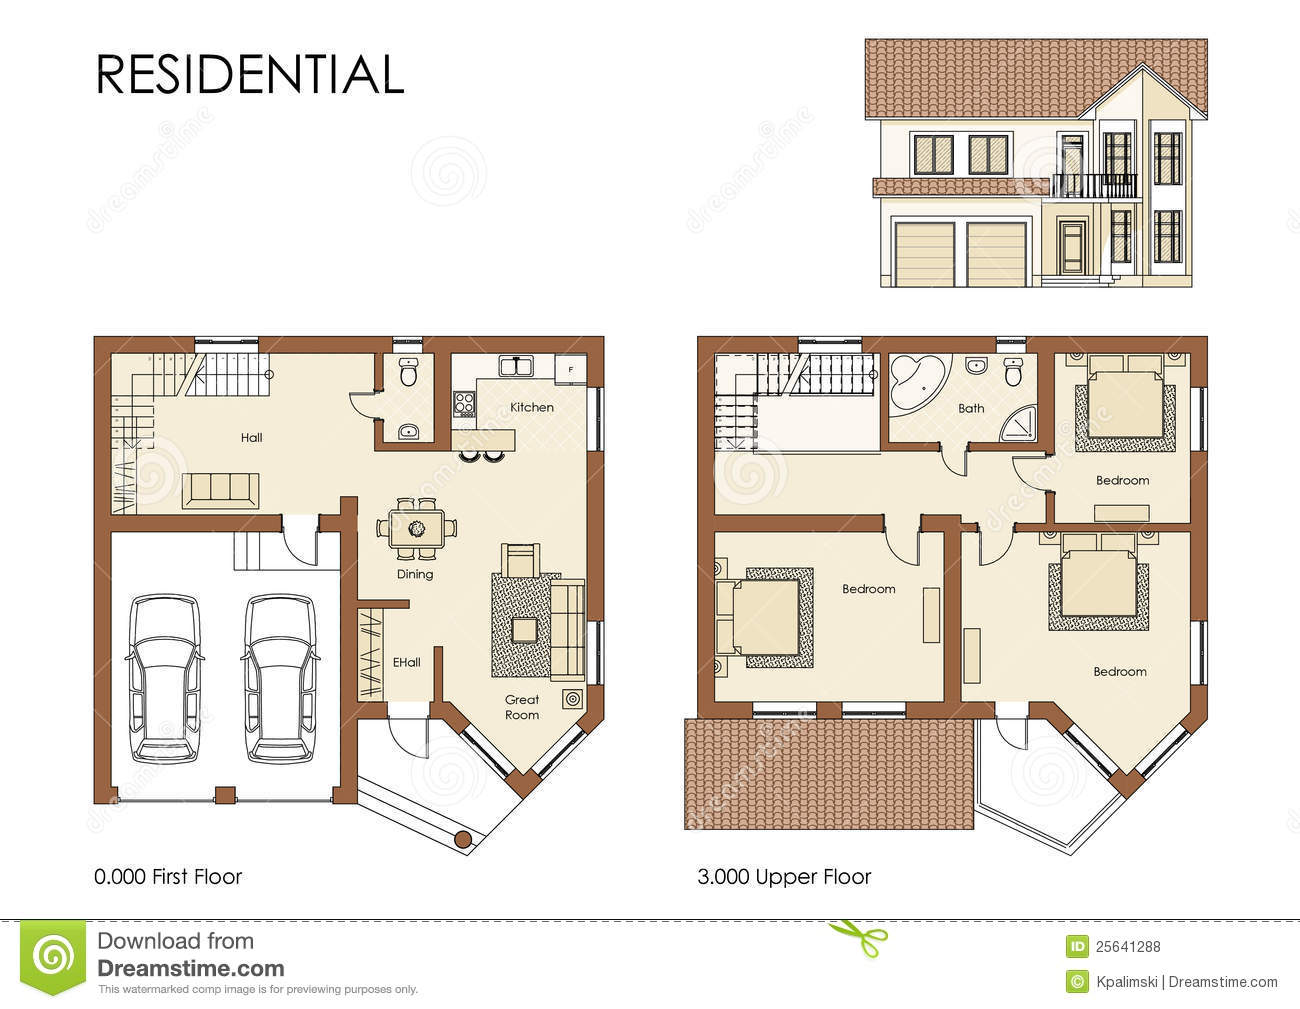 Residential house plan royalty free stock photos image for Small residential building plan